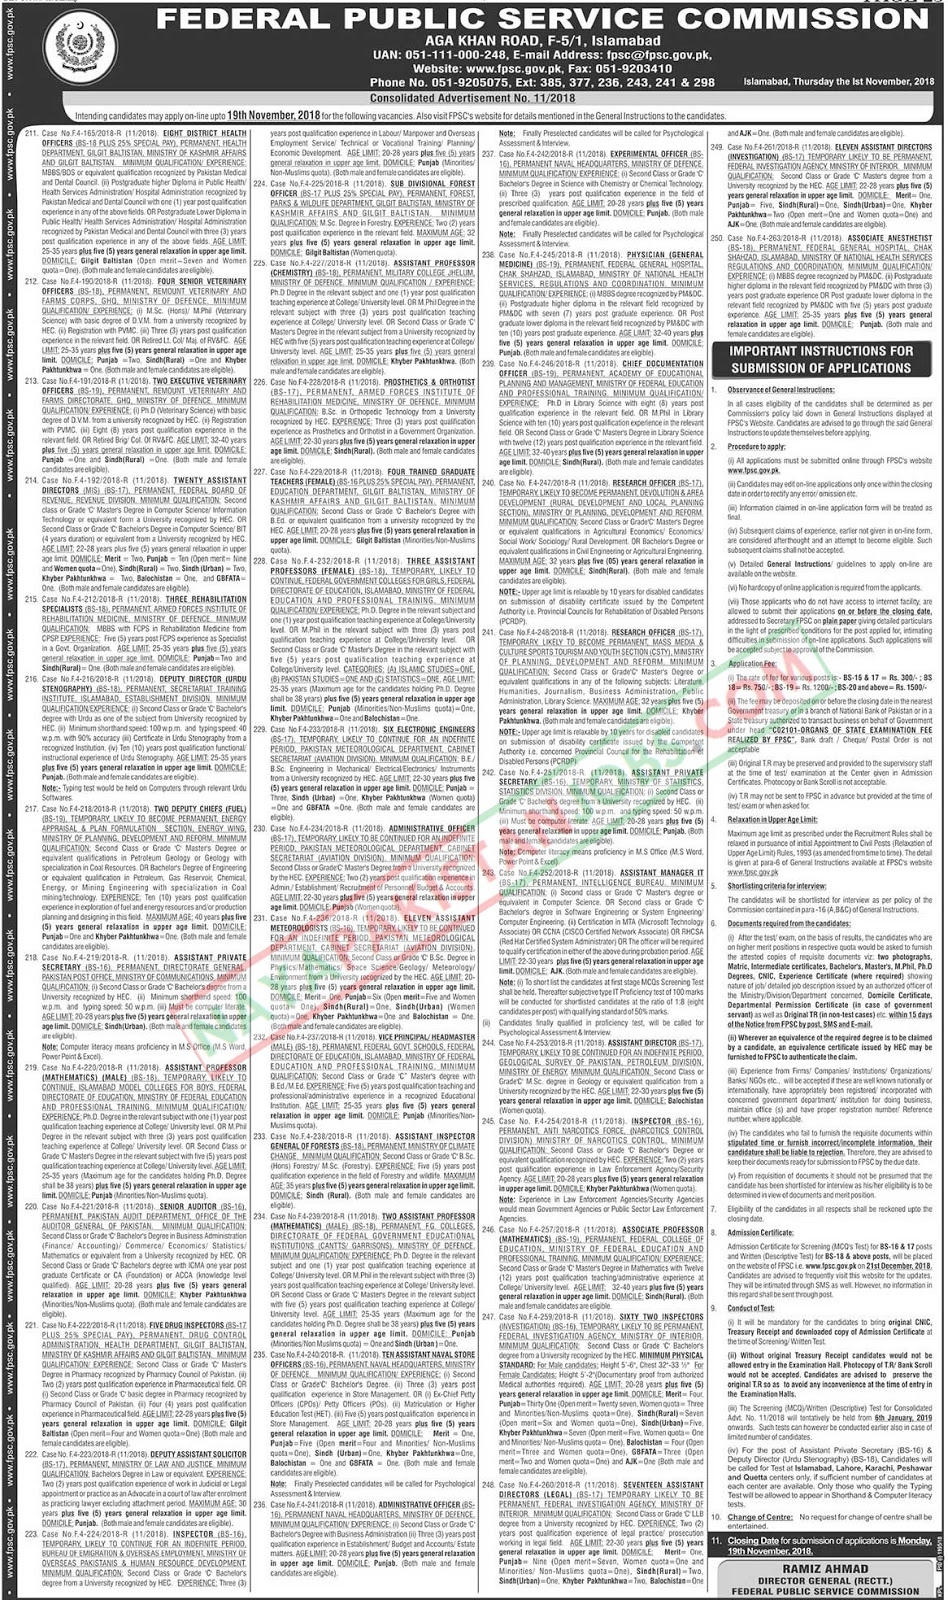 Latest Vacancies Announced in Fpsc.gov.pk Federal Public Service Commission FPSC 4 November 2018 - Naya Pakistan